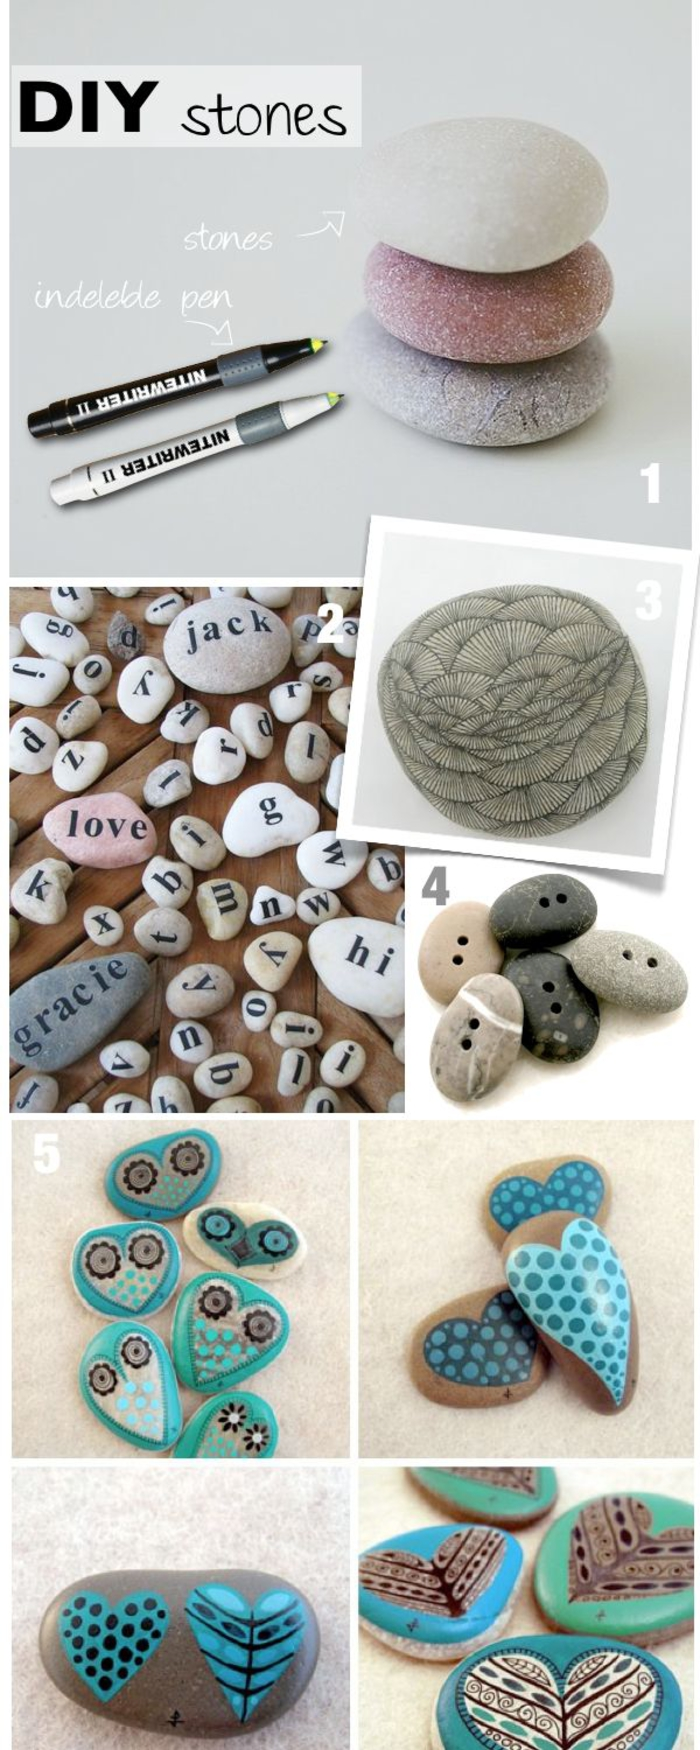 pebble painting ideas22